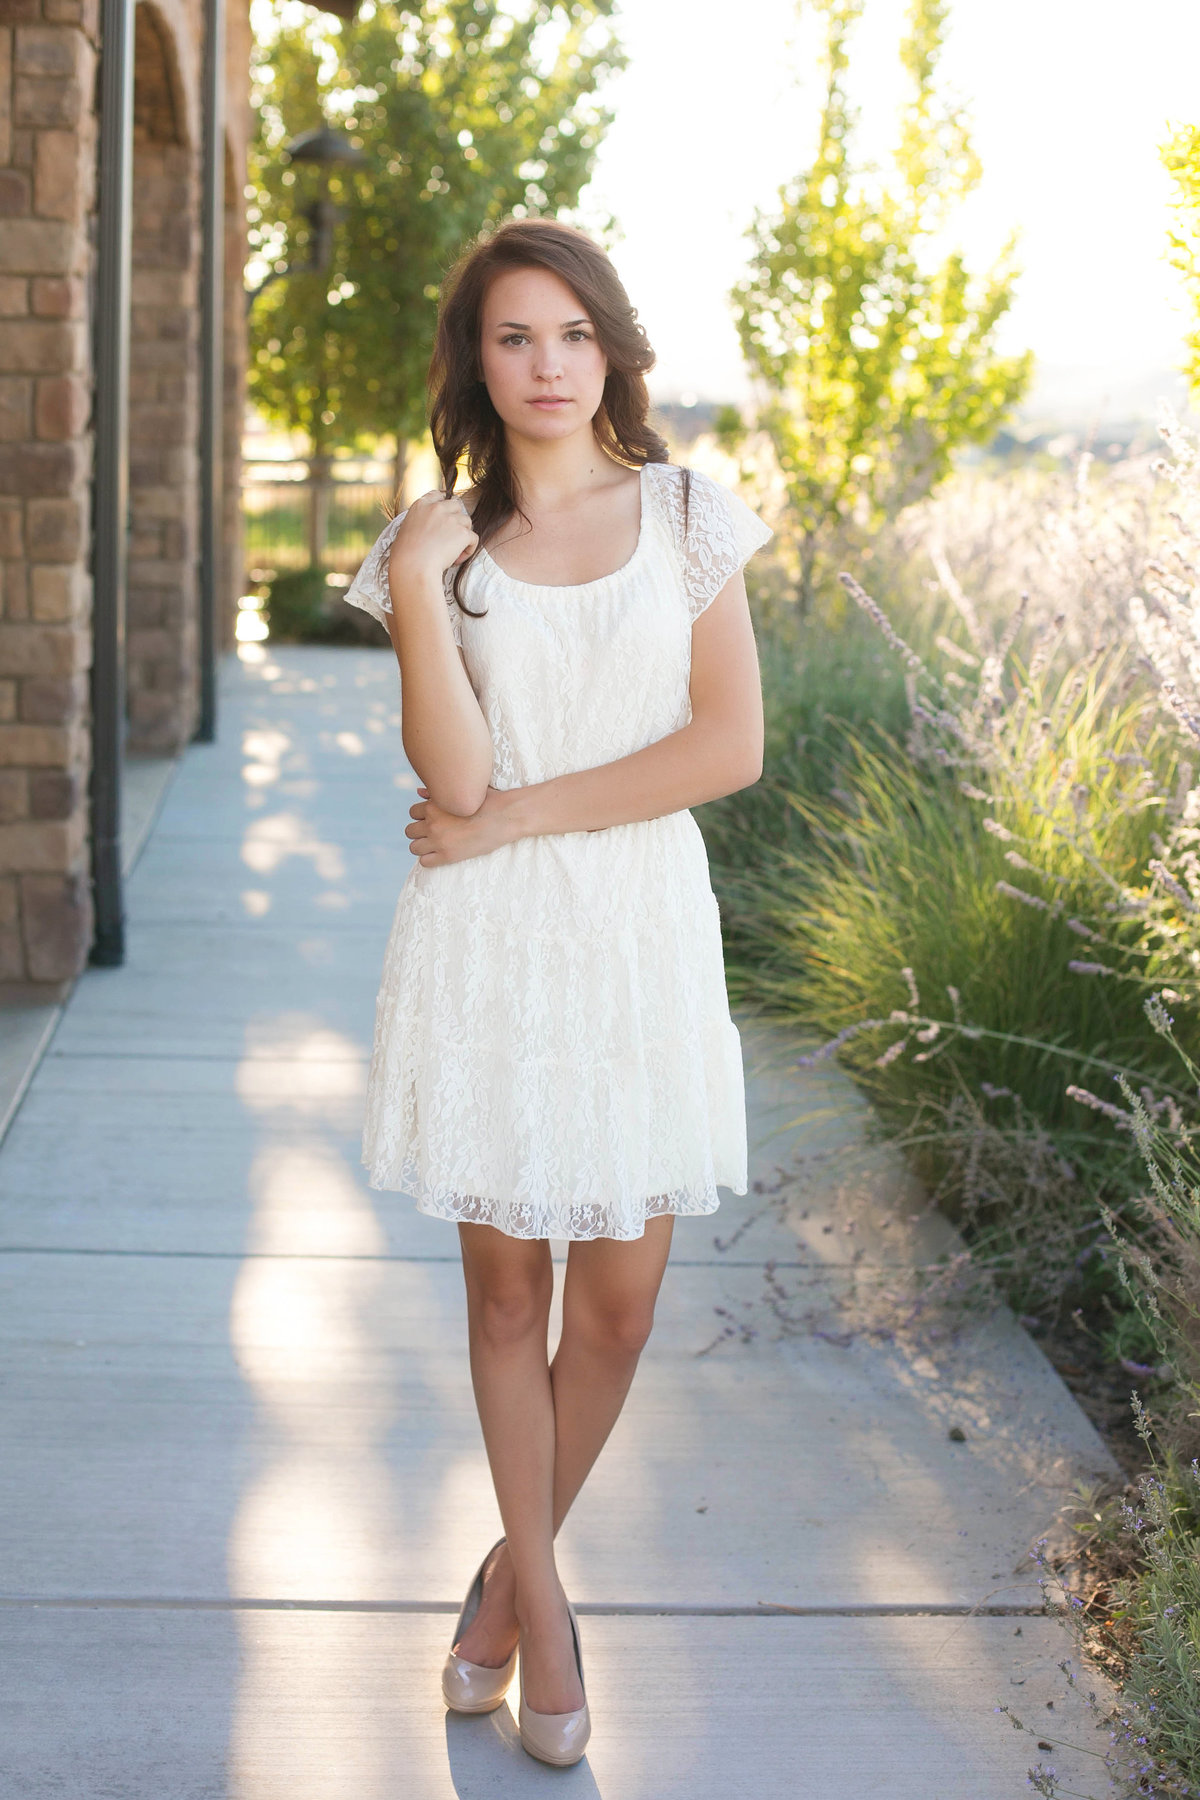 Boise-idaho-meridian-rocky-eagle-nampa-kuna-emmett-mccall-high-school-senior-photographer-lee-ann-norris066